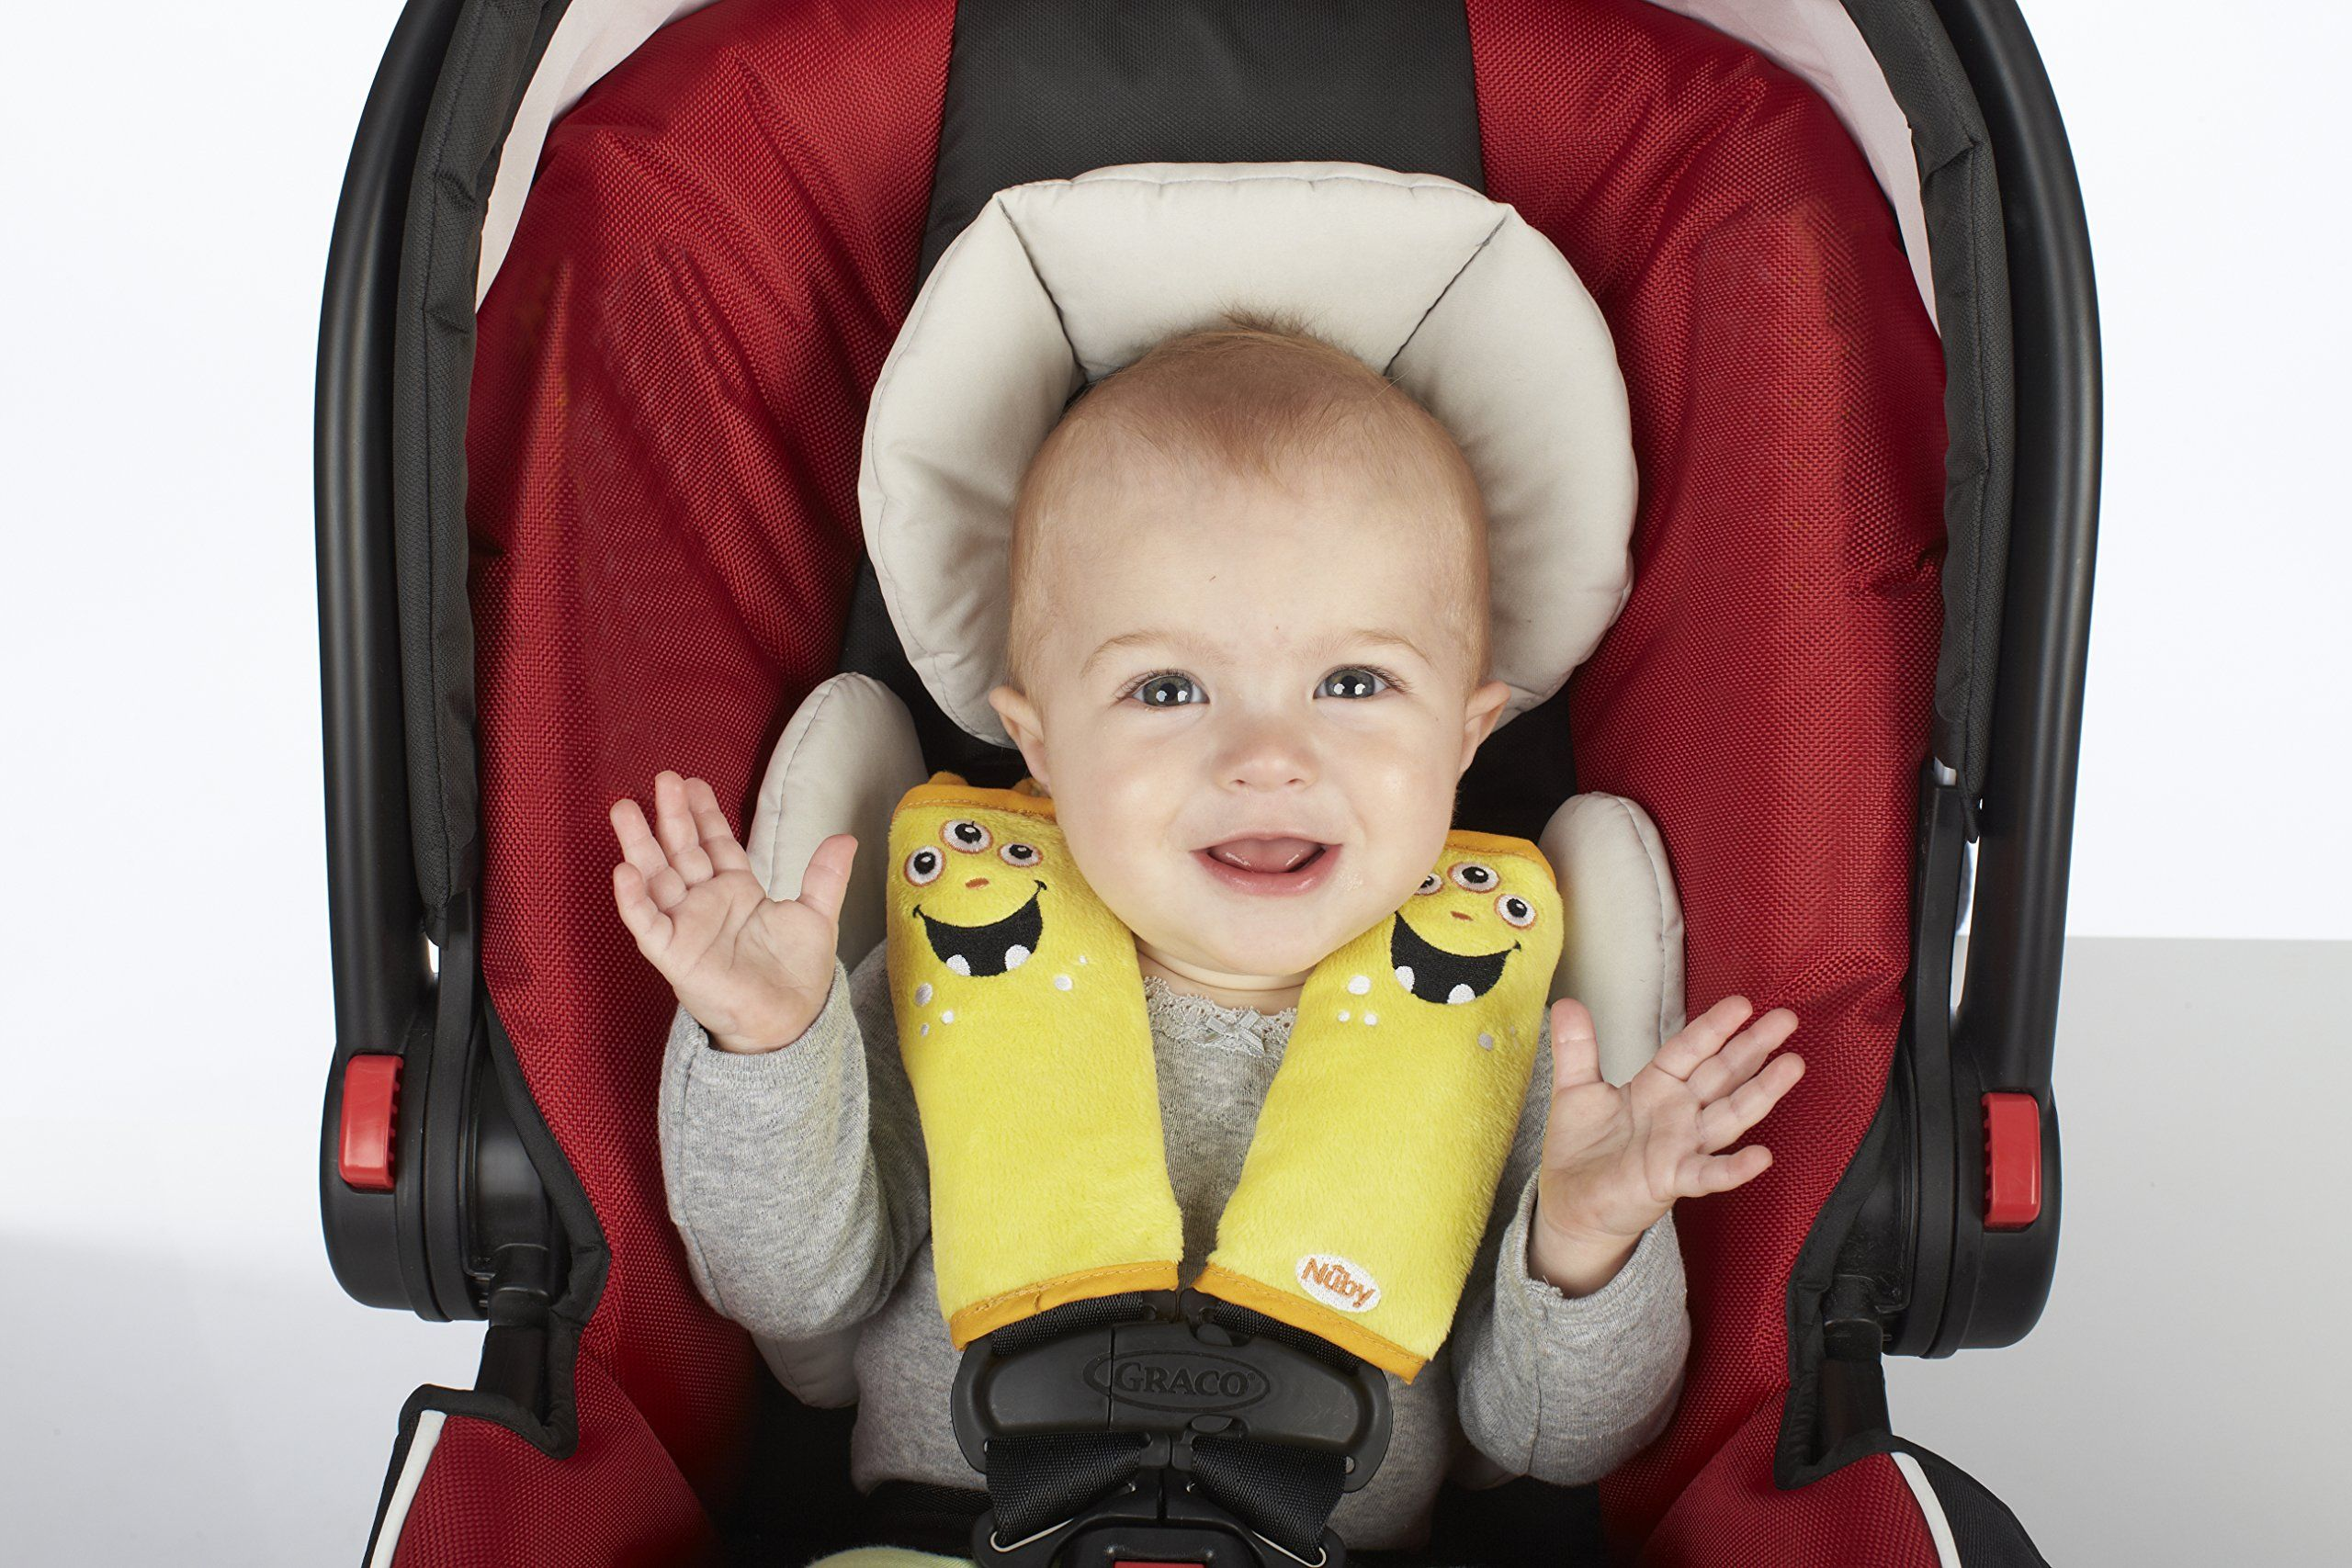 Nuby Car Seat Strap Baby Carseat Cover Belt Covers For Kids Stroller Accessories Head Support Shoulder Pads Yellow Monster